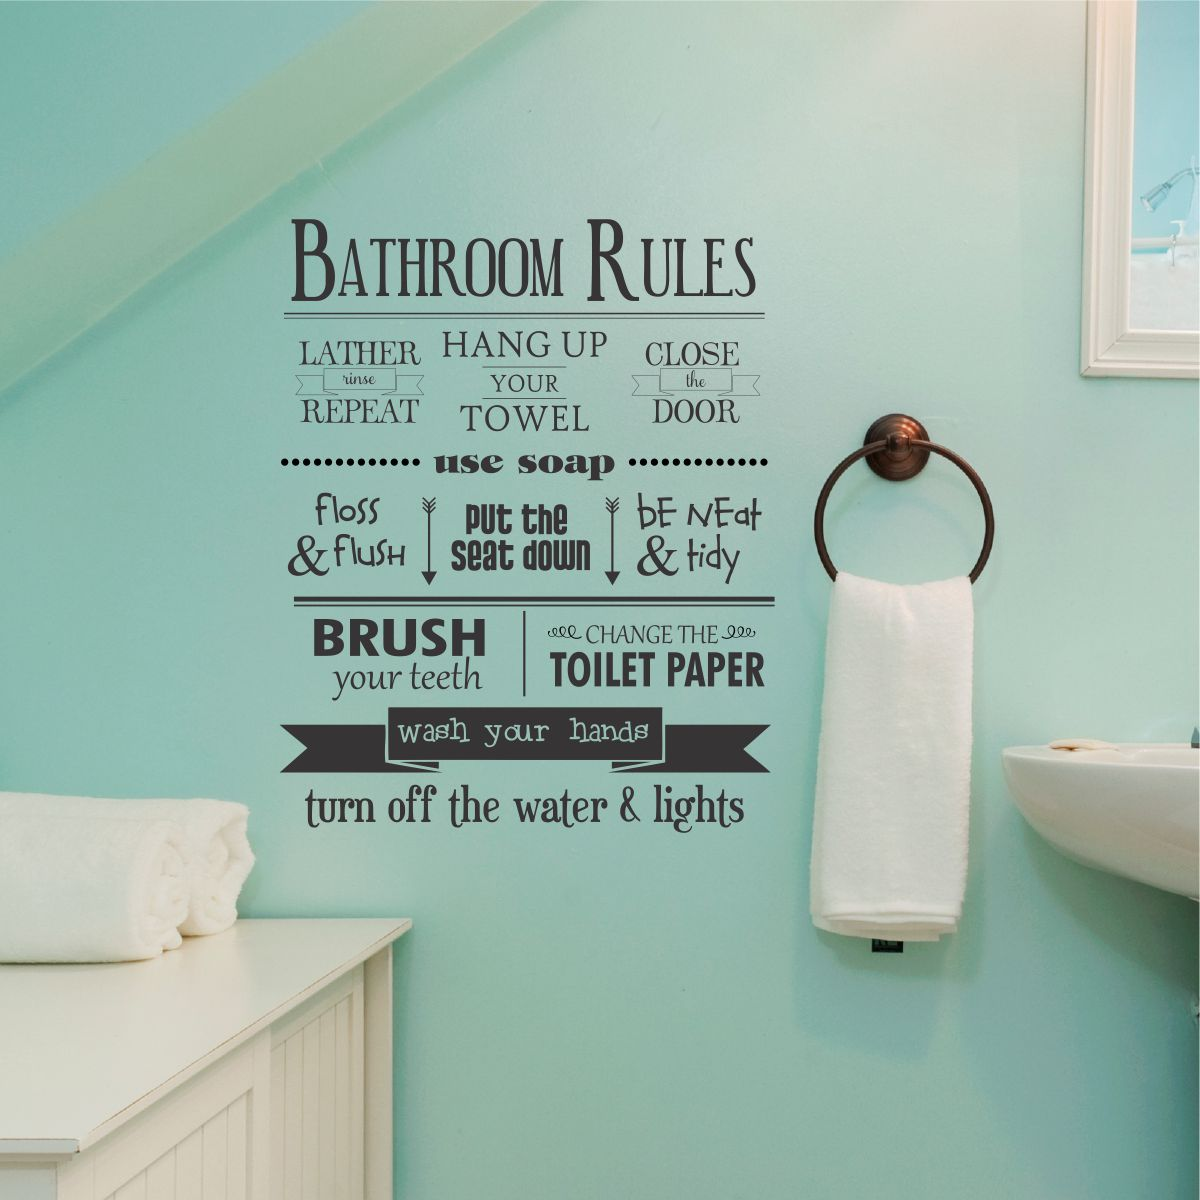 Bathroom Rules Wall Quotes Decal WallQuotescom - Custom vinyl wall decals sayings for bathroom